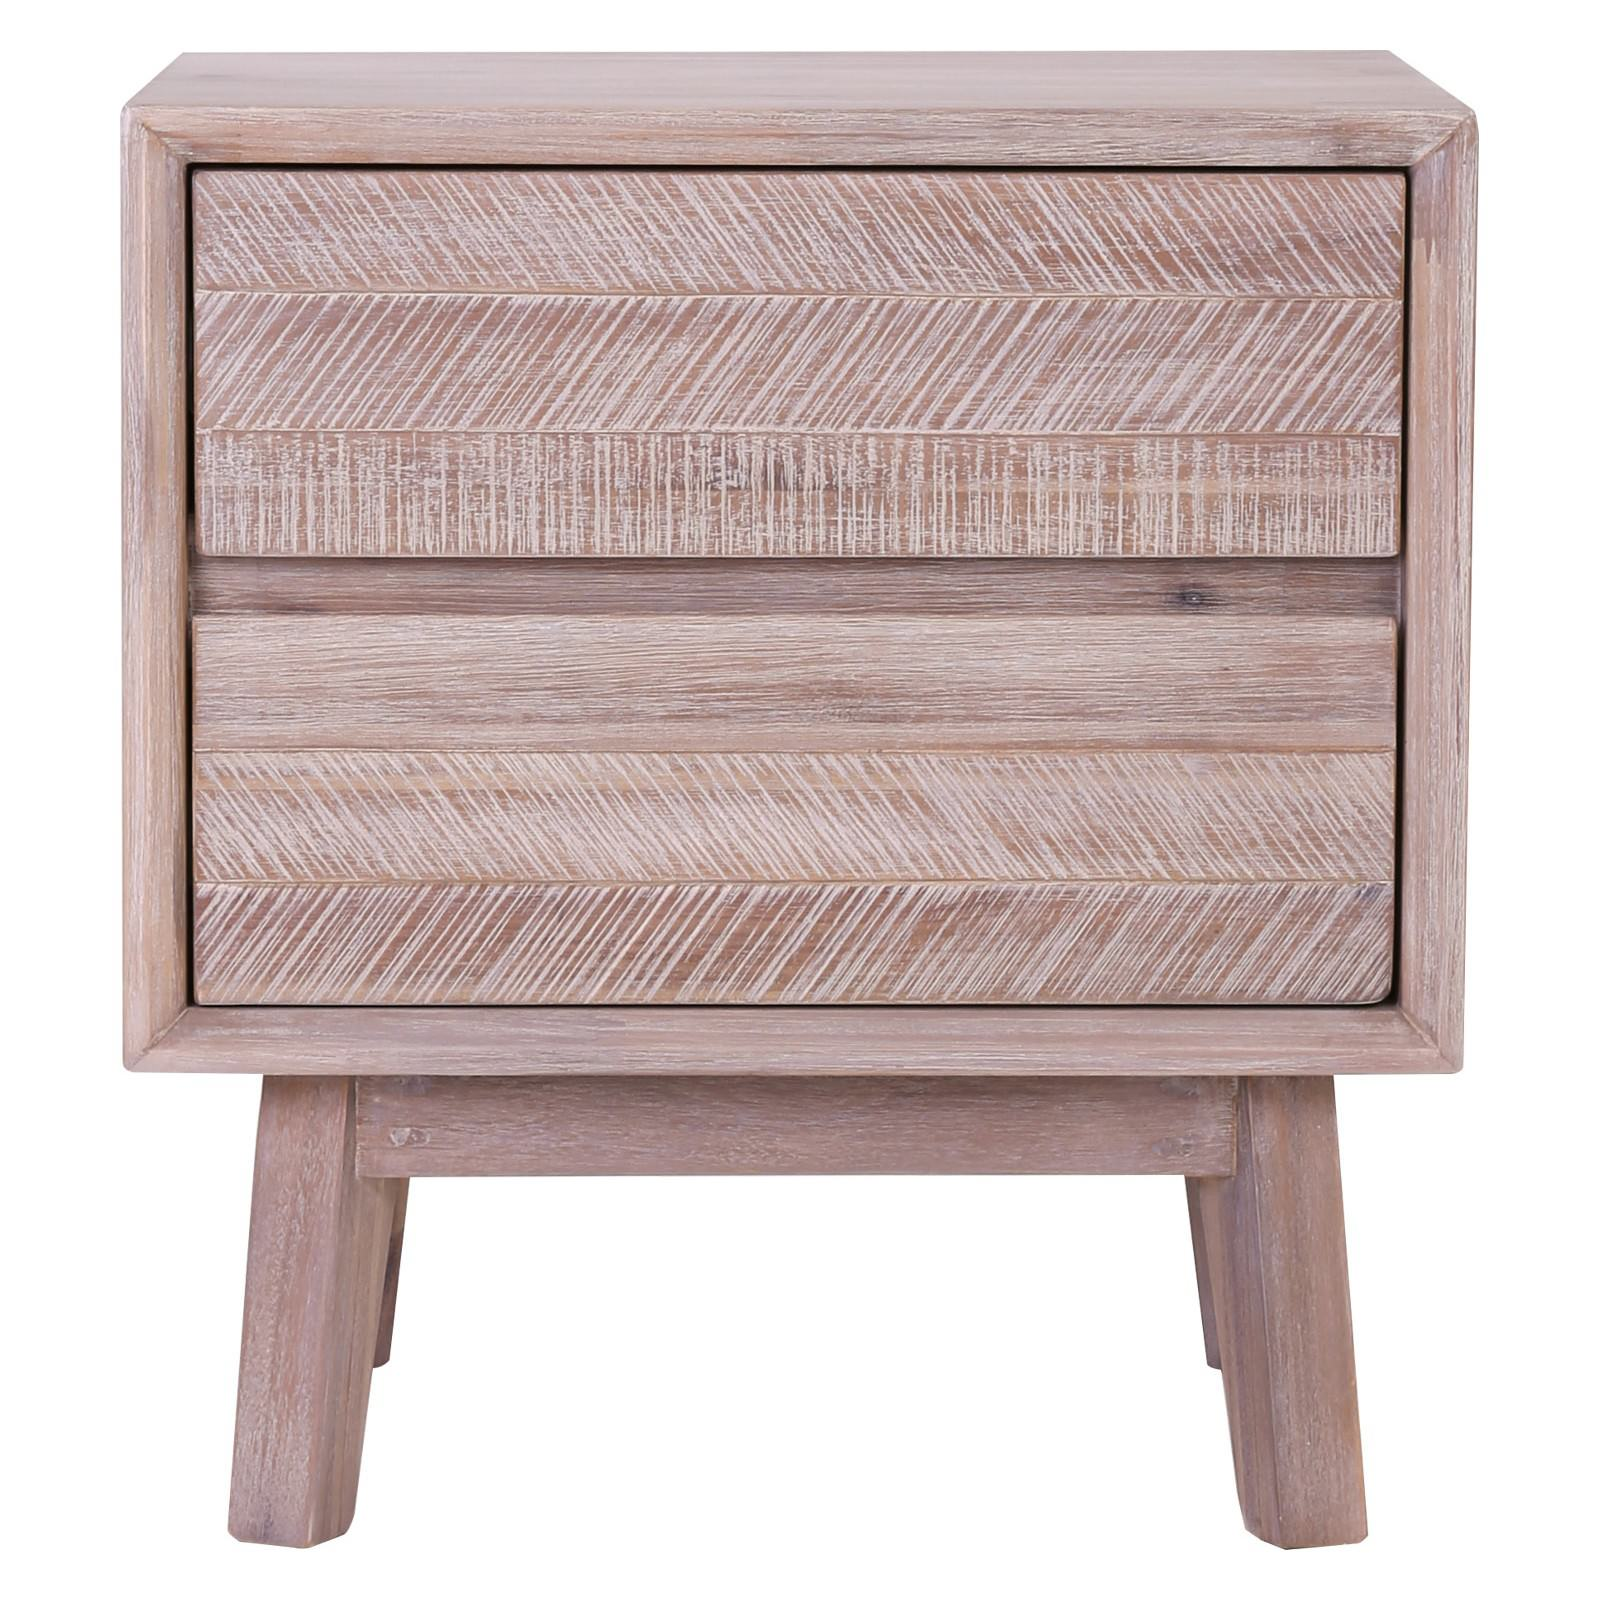 Madrid Commercial Grade Acacia Timber 2 Drawer Bedside Table